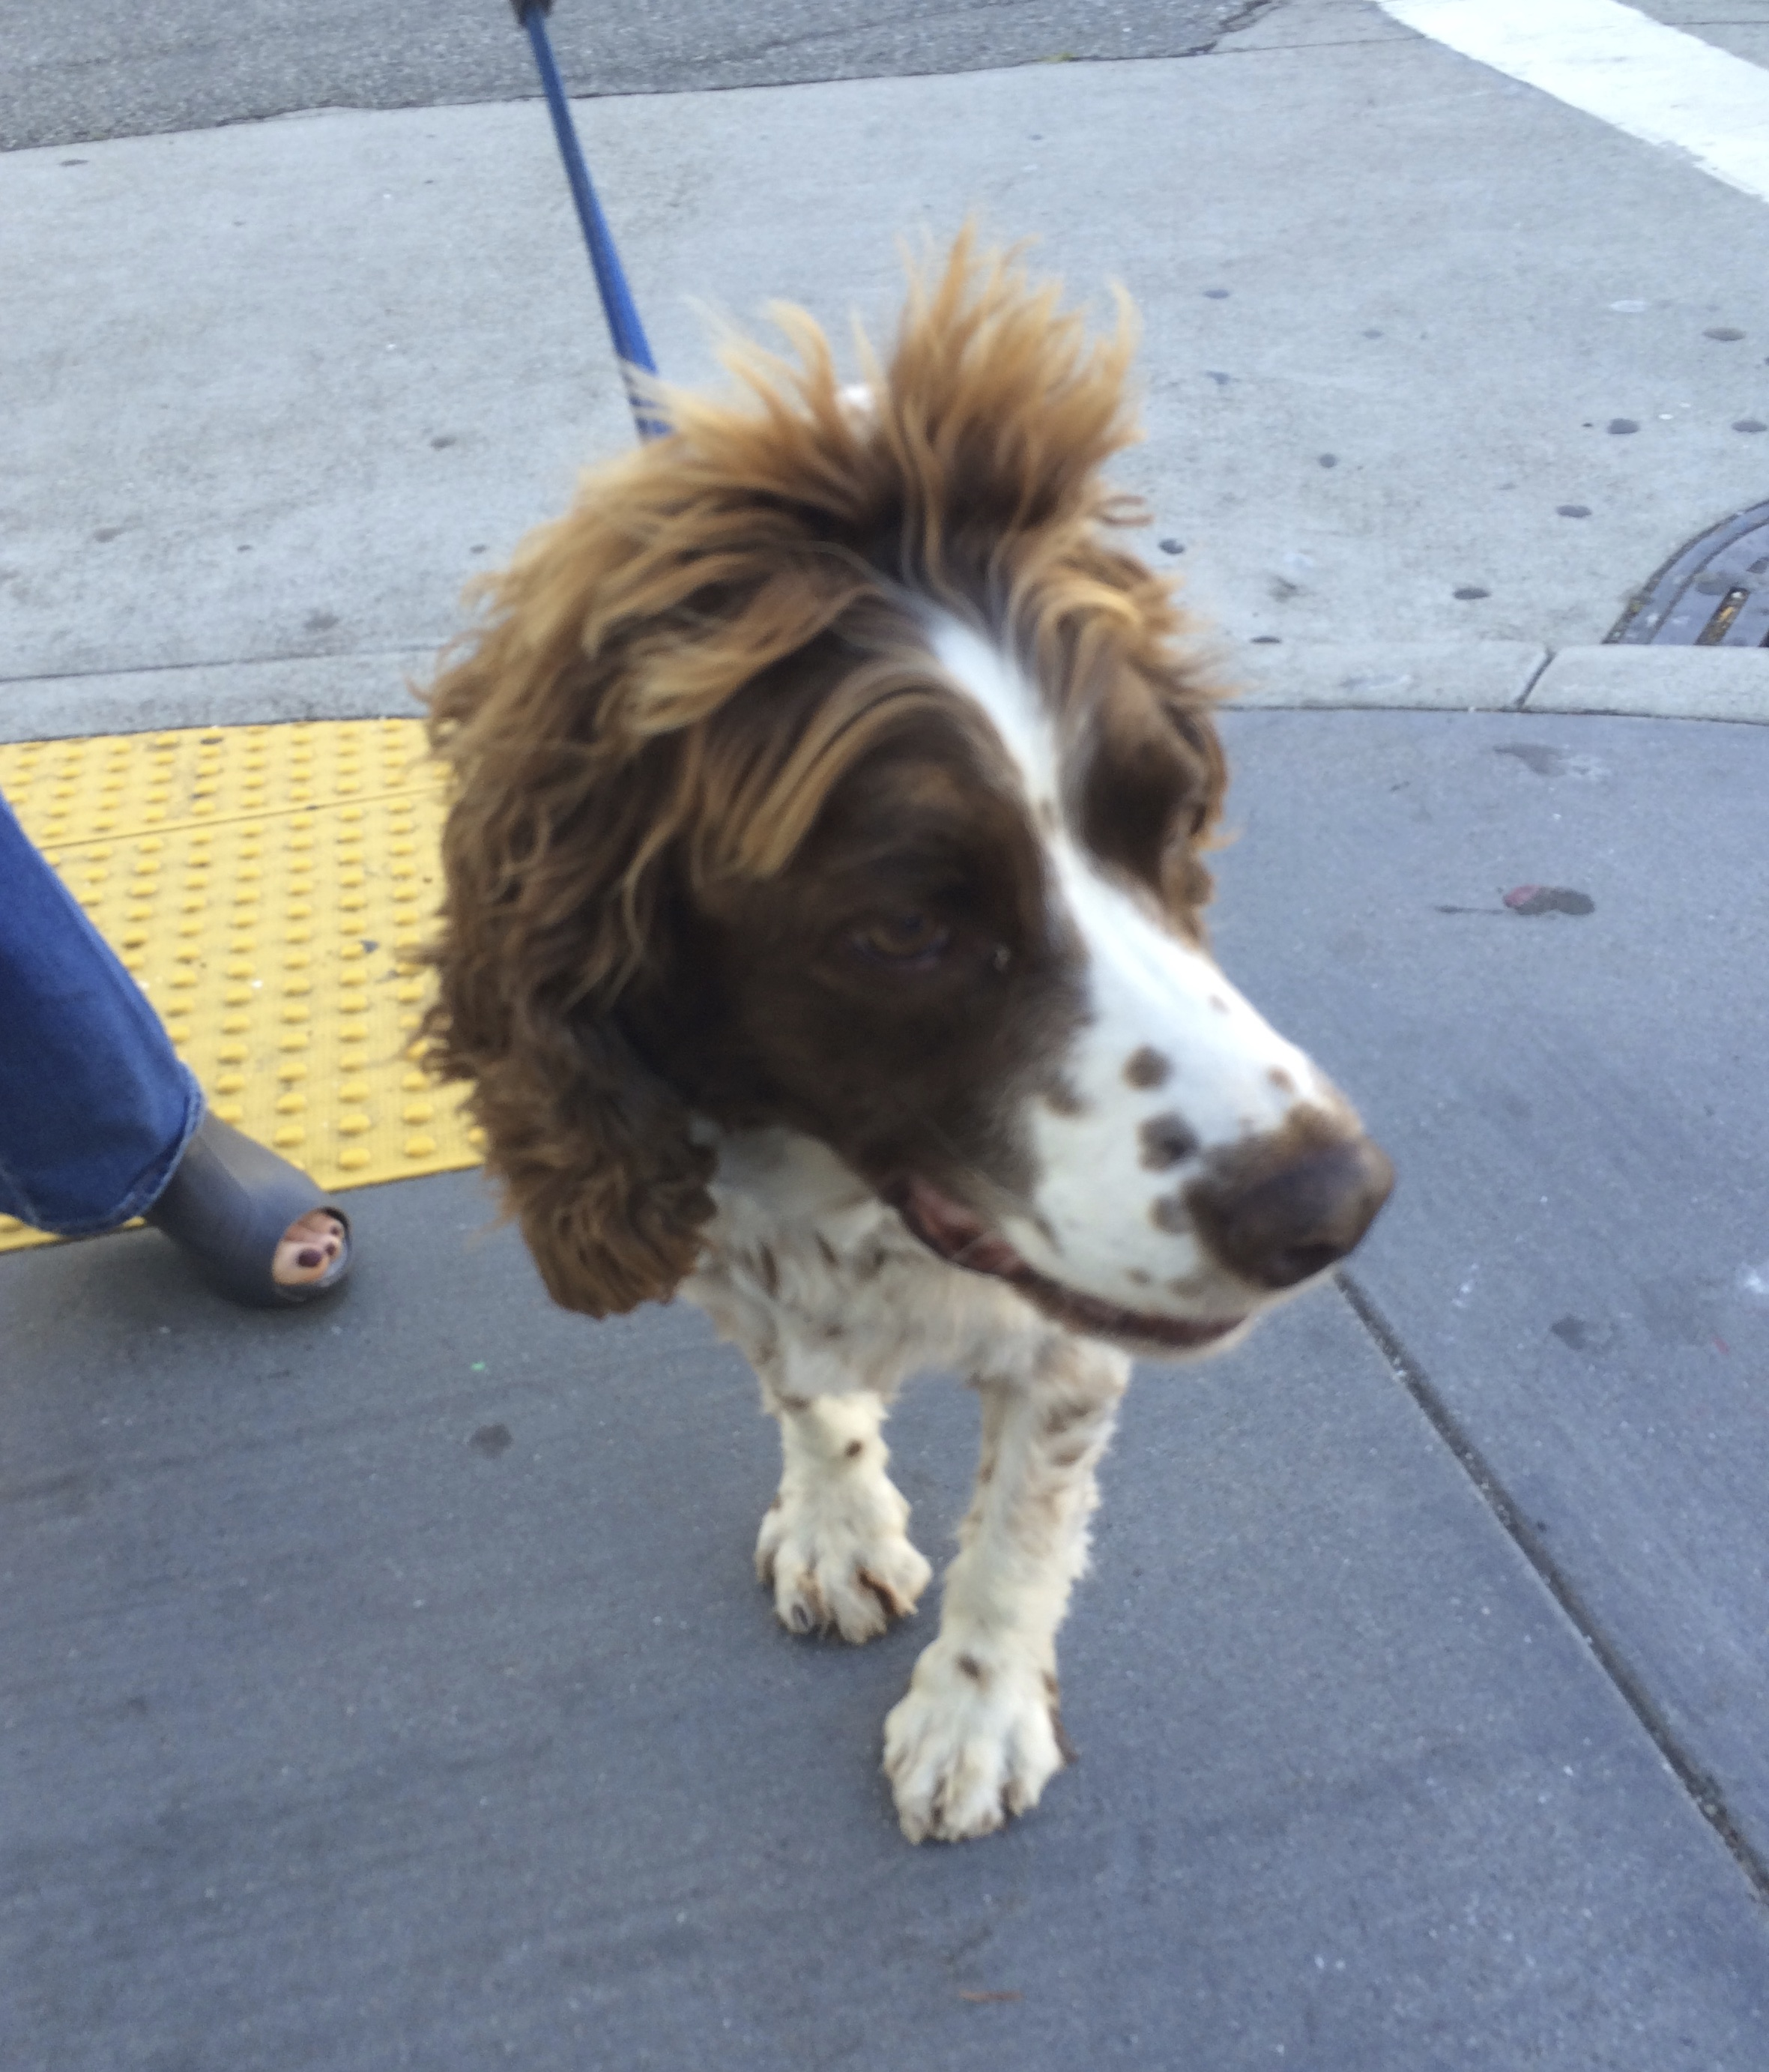 English Springer Spaniel With Very Long Fluffy Hair On Her Head